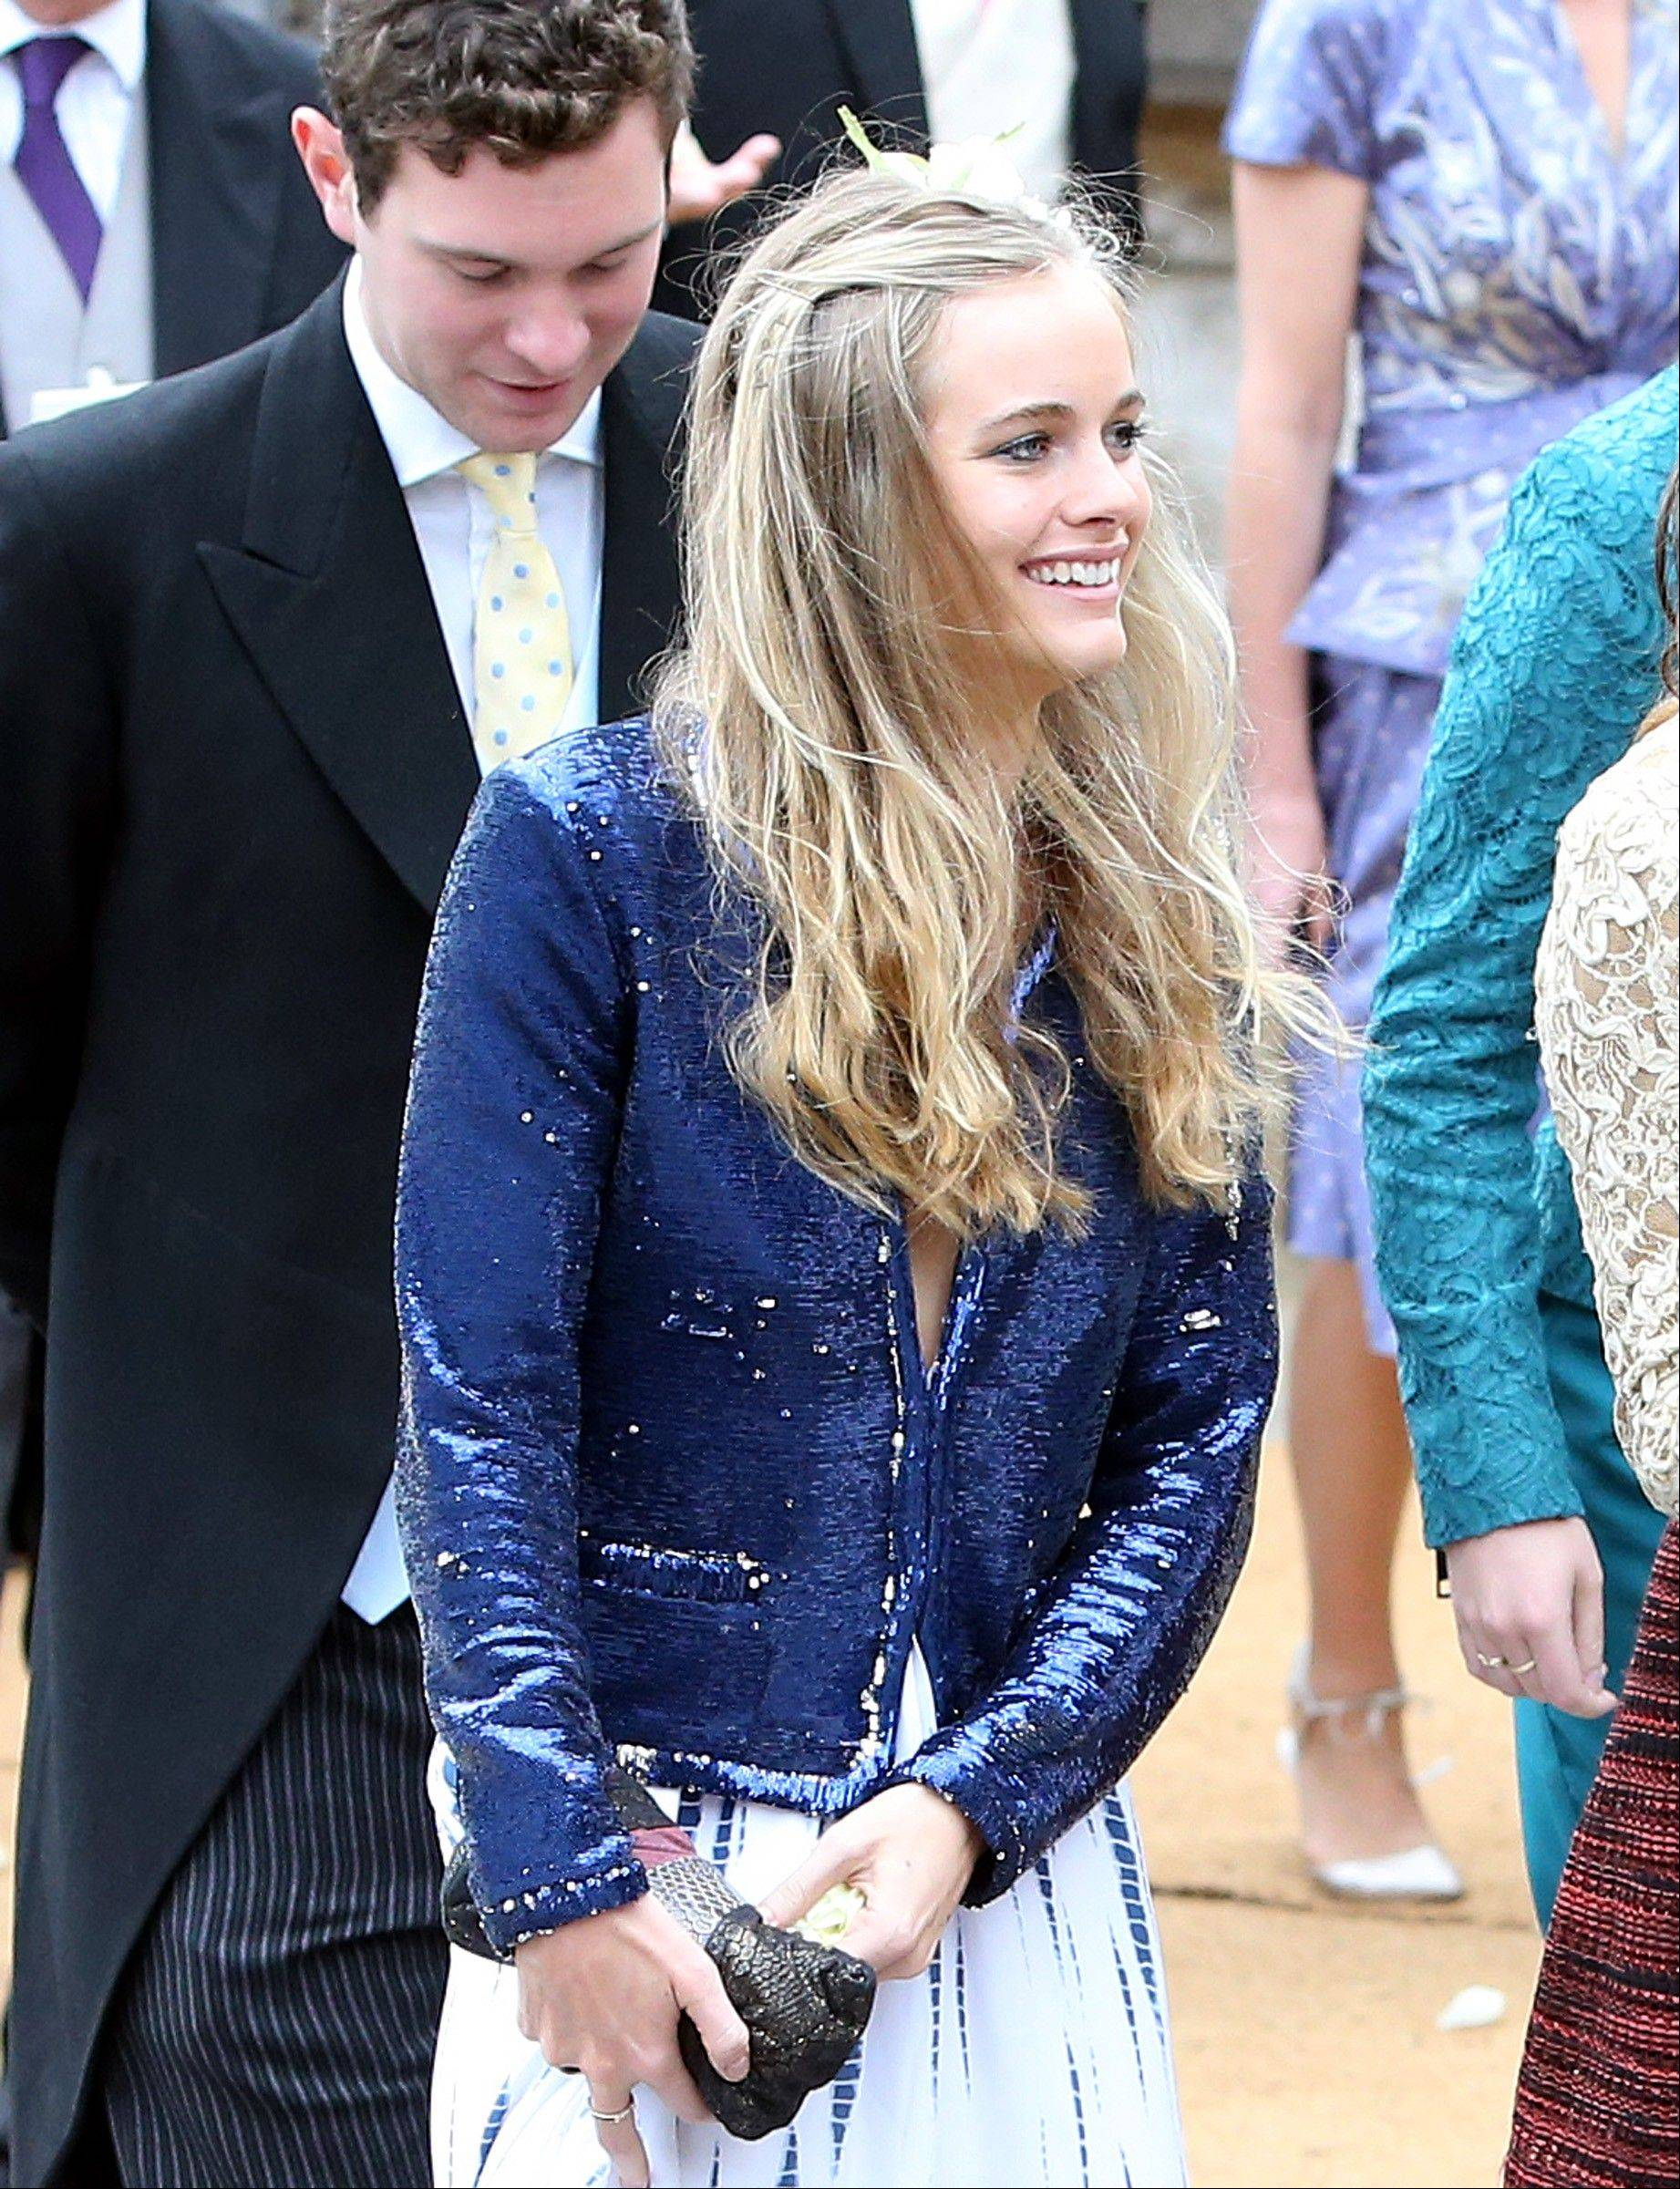 Cressida Bonas, who is the girlfriend of Britain's Prince Harry, leaves after attending the wedding of the Duke and Duchess of Northumberland's daughter Lady Melissa Percy to chartered surveyor Thomas van Straubenzee at St Michael's Church in Alnwick, England, Saturday, June 22, 2013.